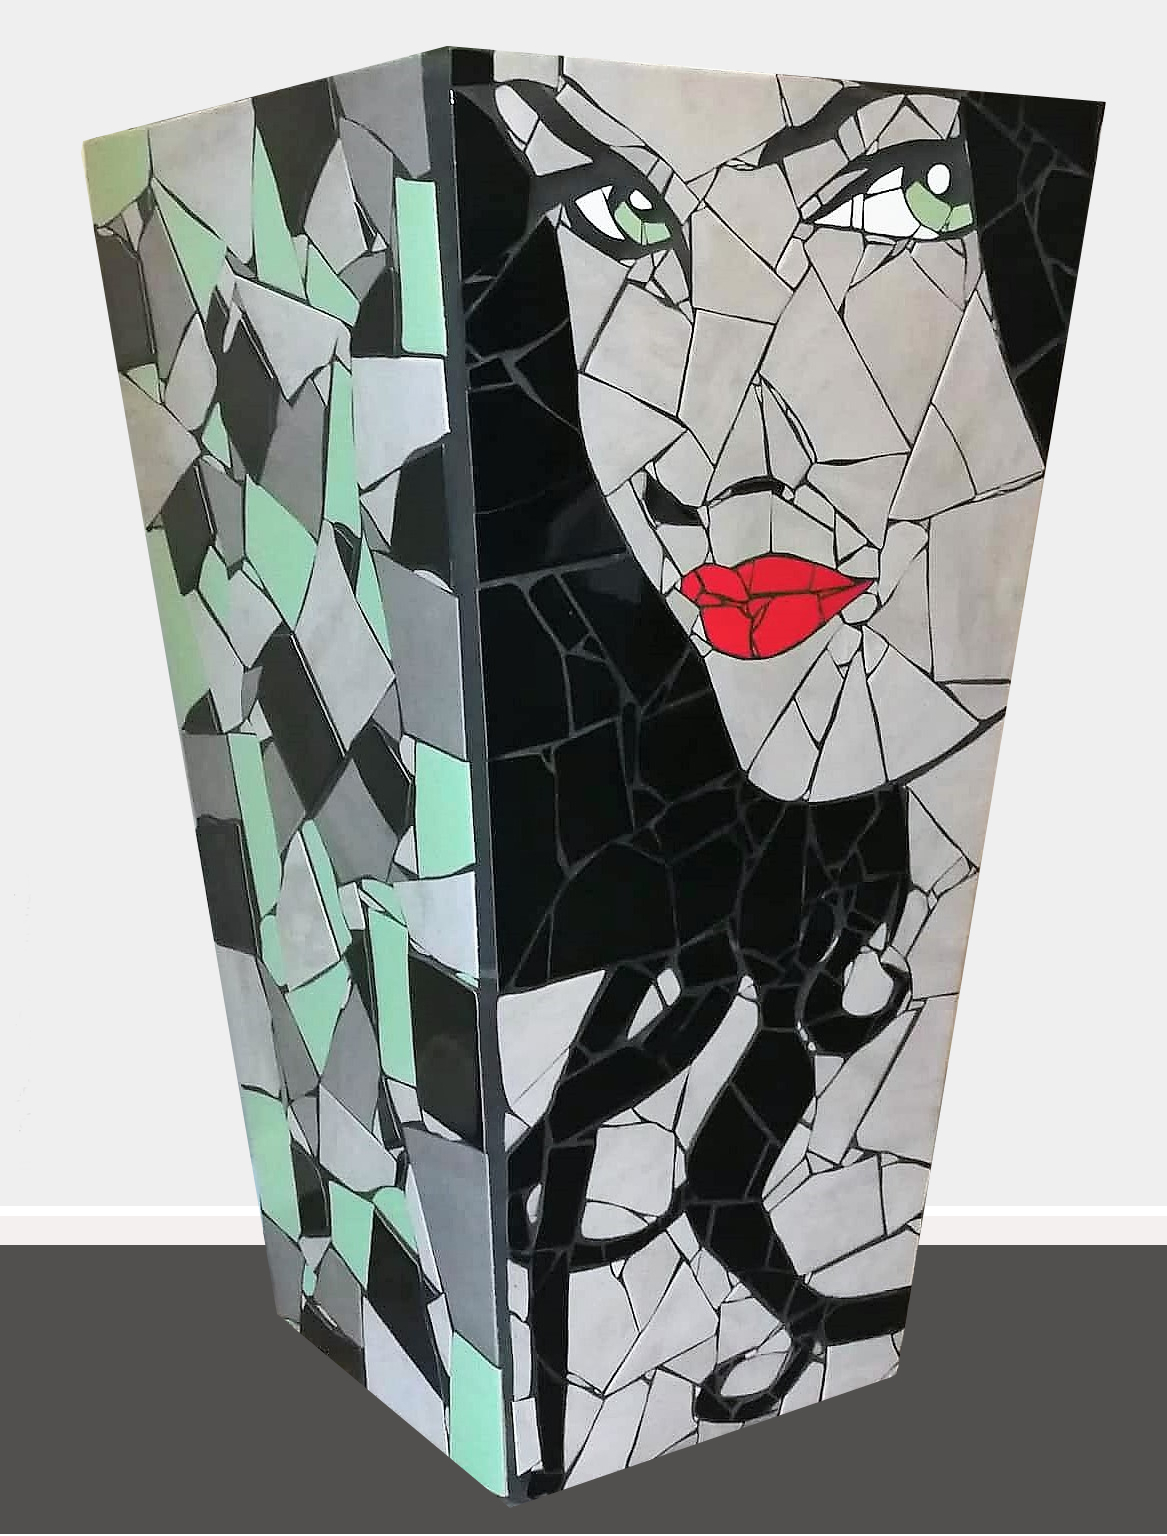 Esmarelda  Danielle Fernandez, pop art mosaic planter, indoor/outdoor (drainage hole at bottom), 815mm x 470mm. Esmarelda comes from 'Esmarelda Villa Lobos', the taxi driver in the movie 'Pulp Fiction'. She was a dark haired beauty with red lips and a gorgeous Spanish accent.   $3,650.00